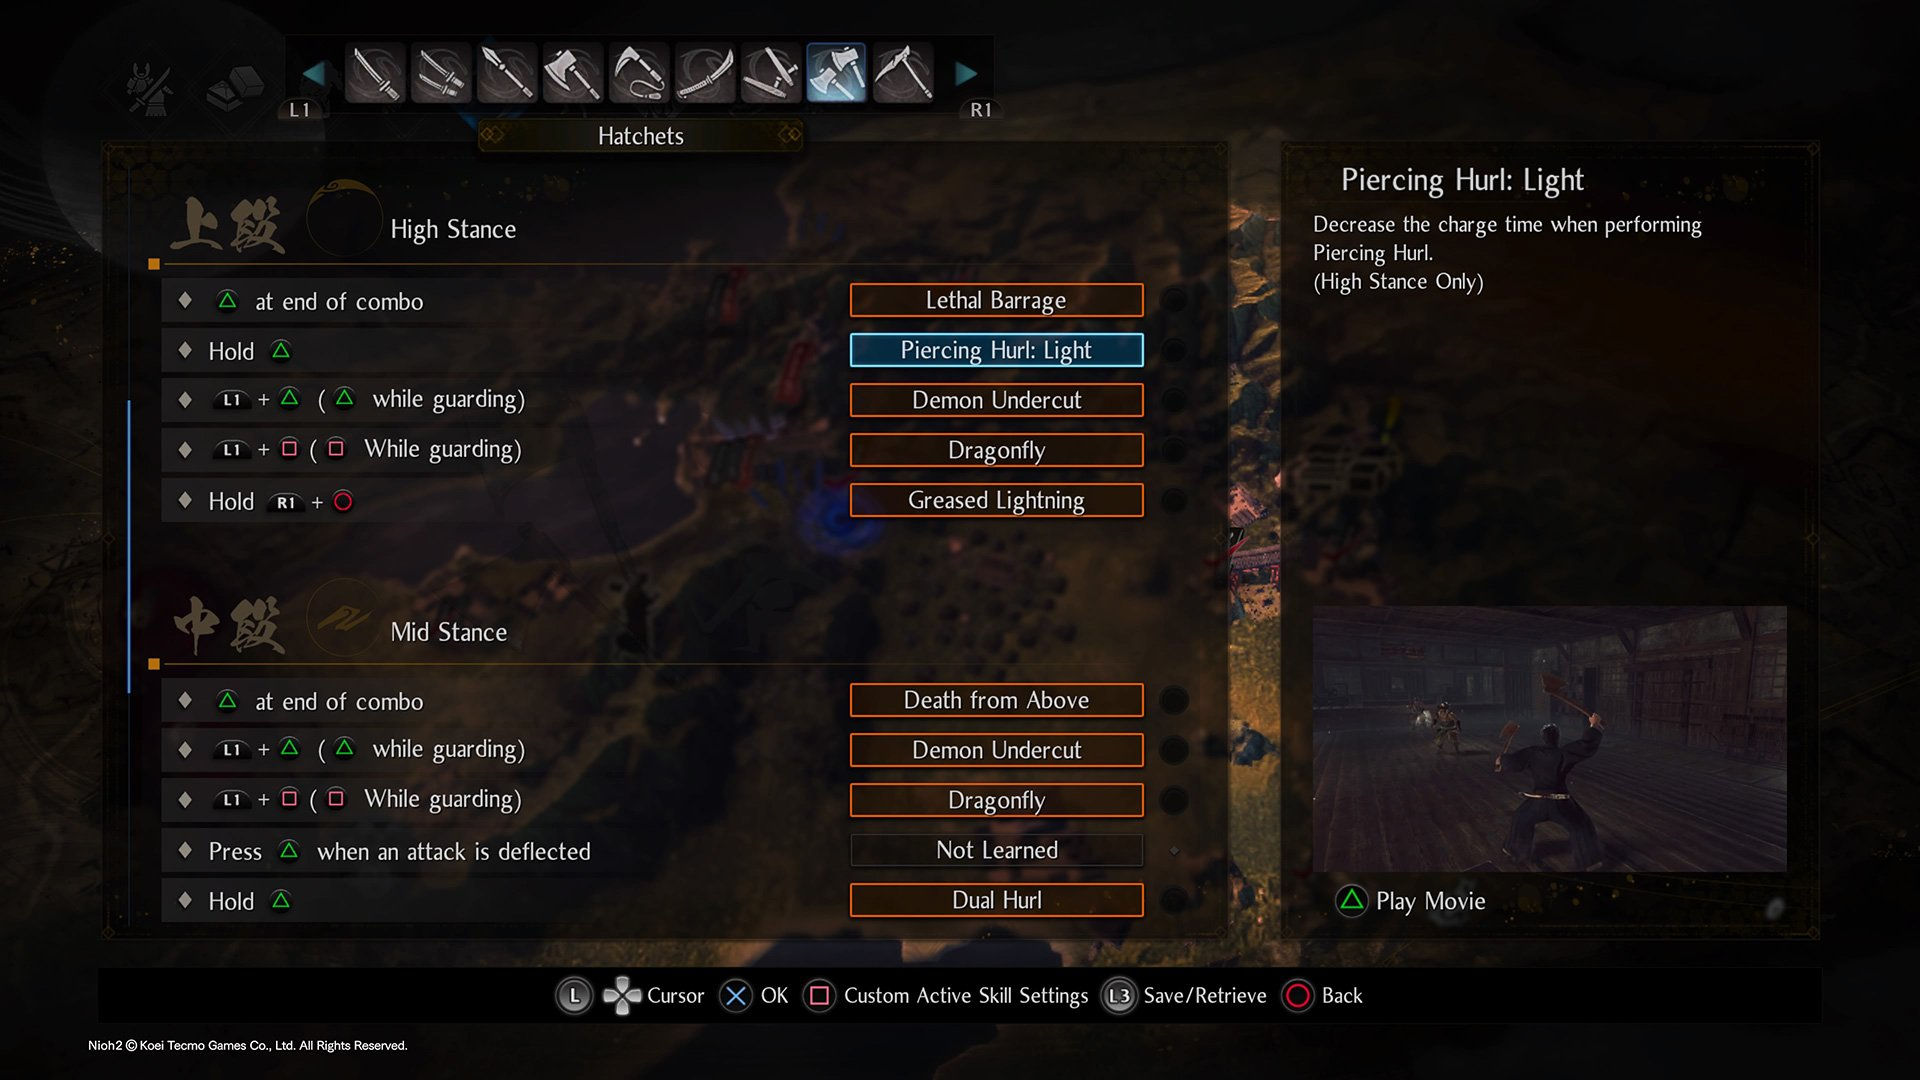 How to customize Active Skills in Nioh 2